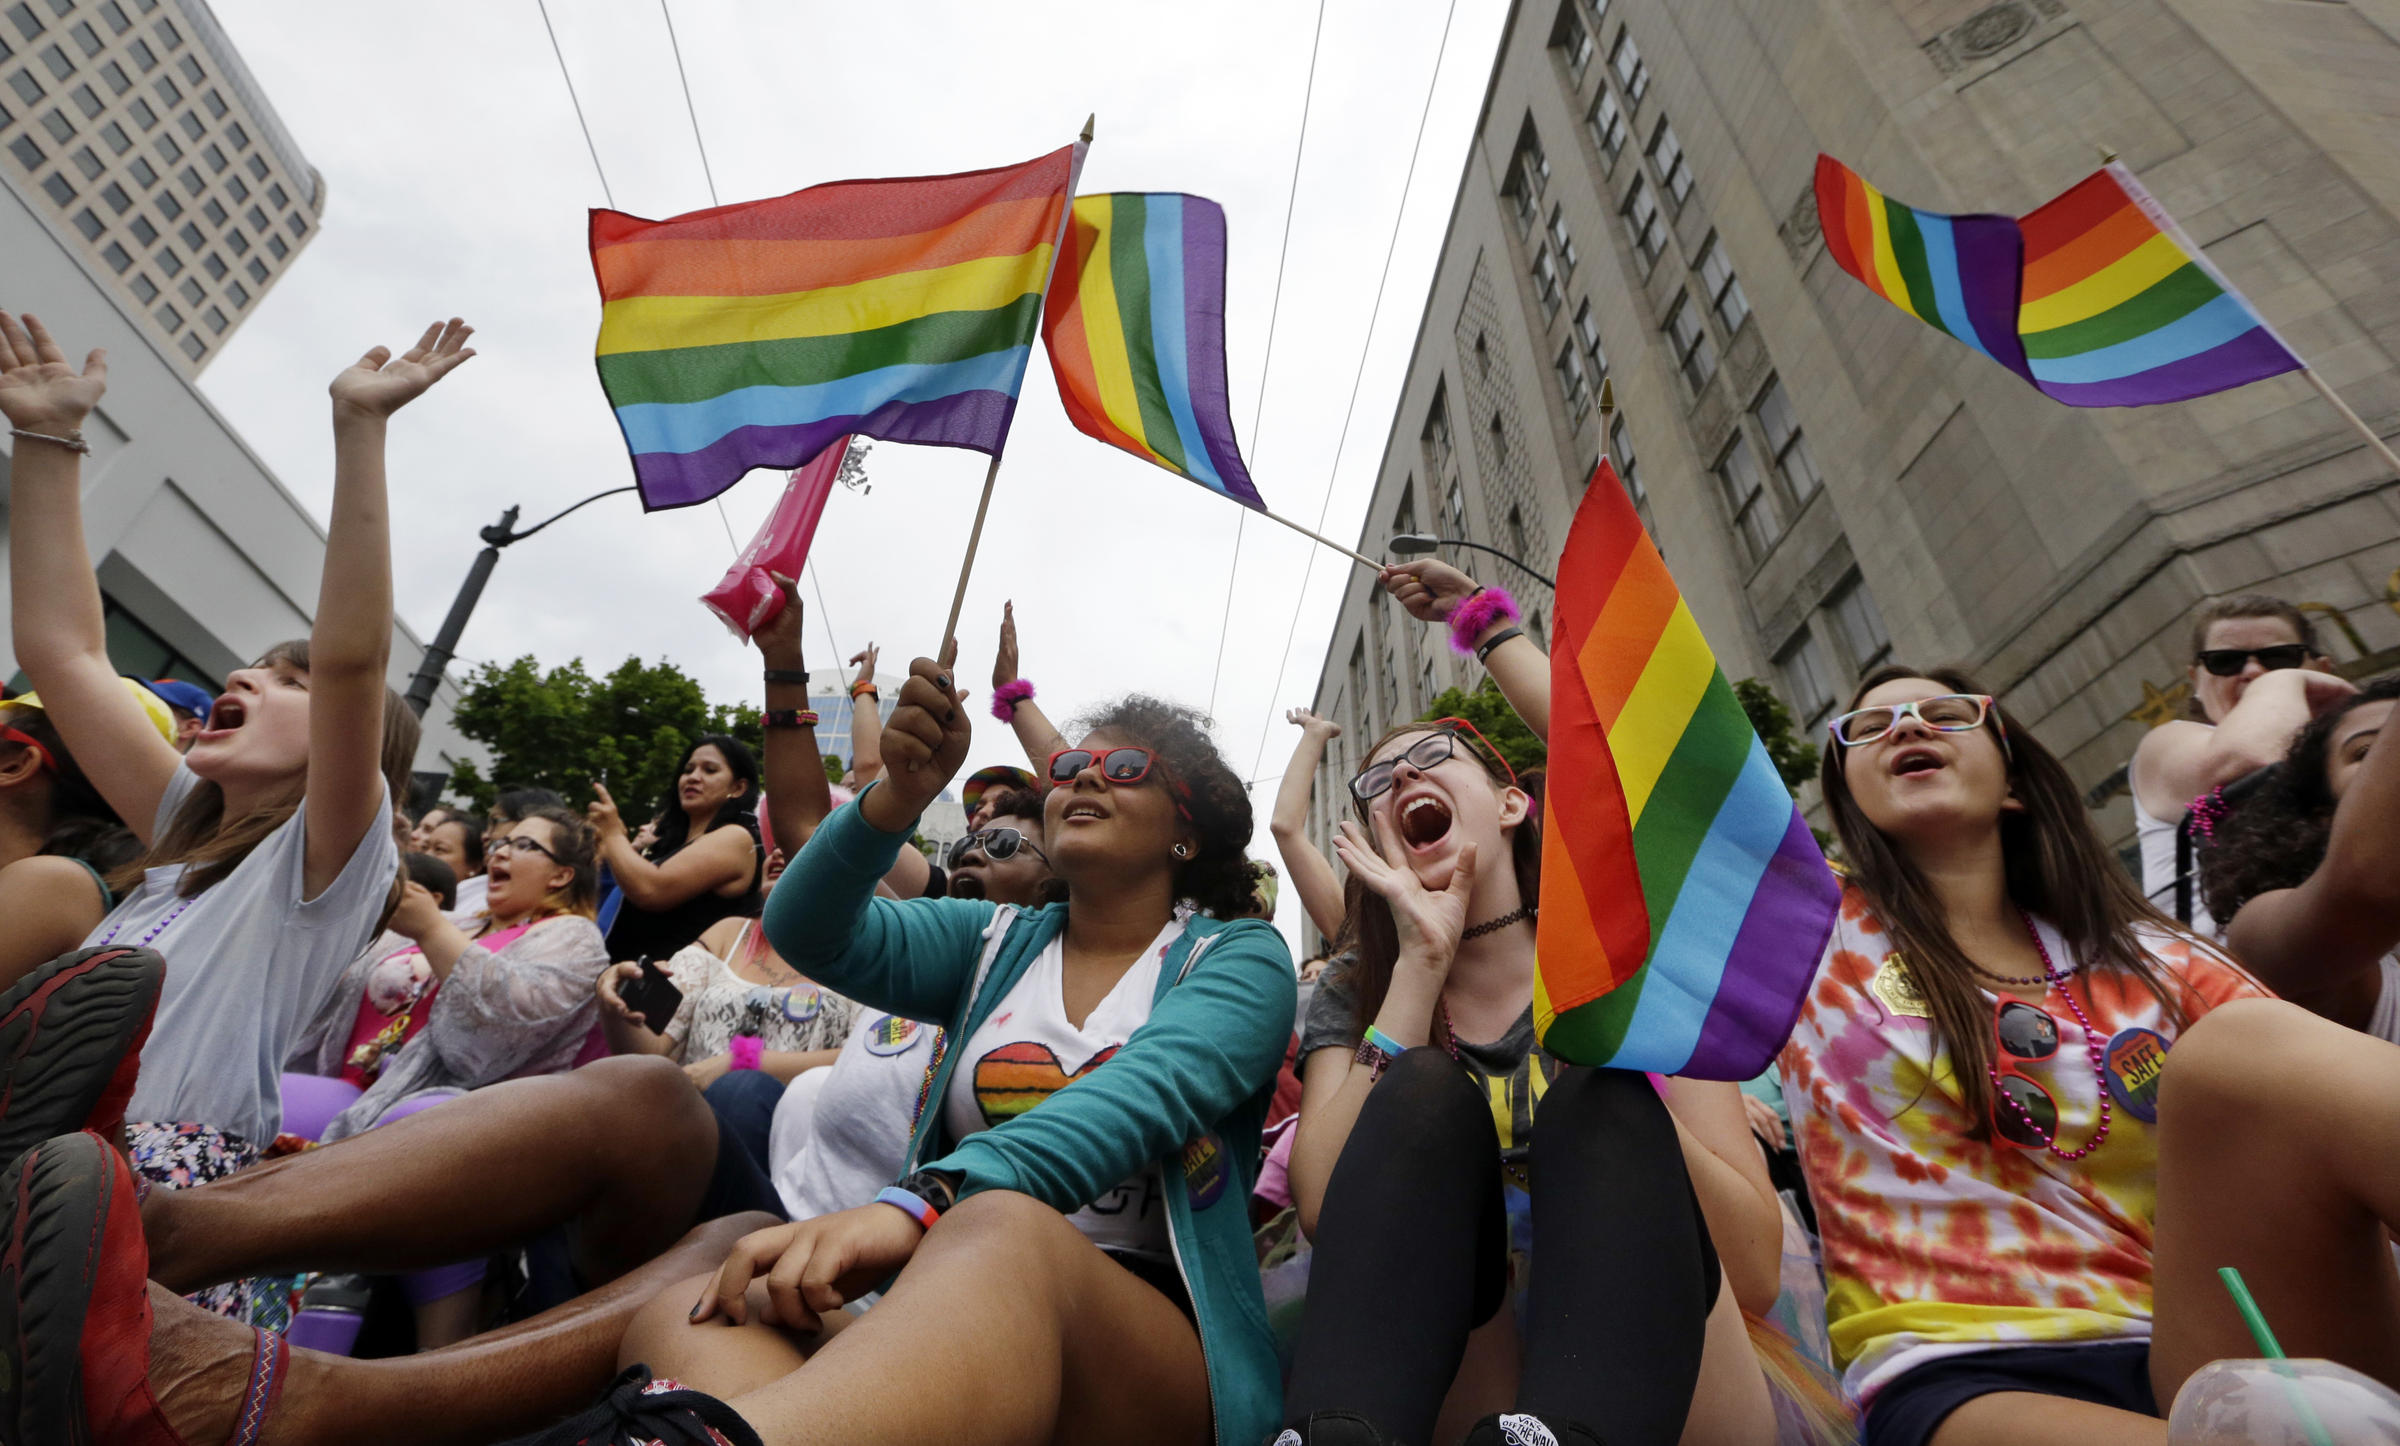 Seattle Pride: Moment of Silence, Rainbow Connection' for Start of Parade